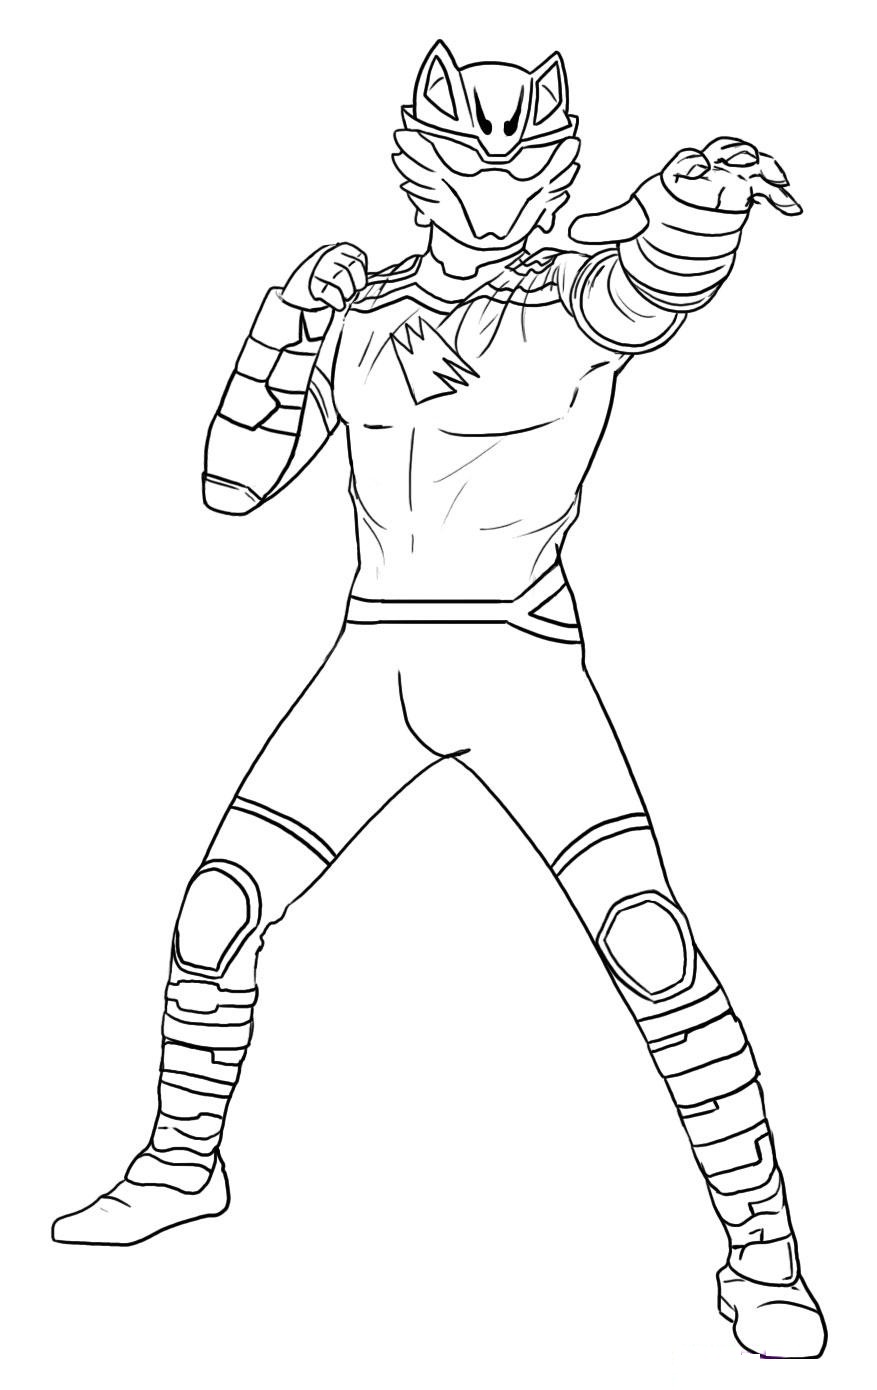 Online coloring power rangers -  Power Rangers Dino Thunder Coloring Download